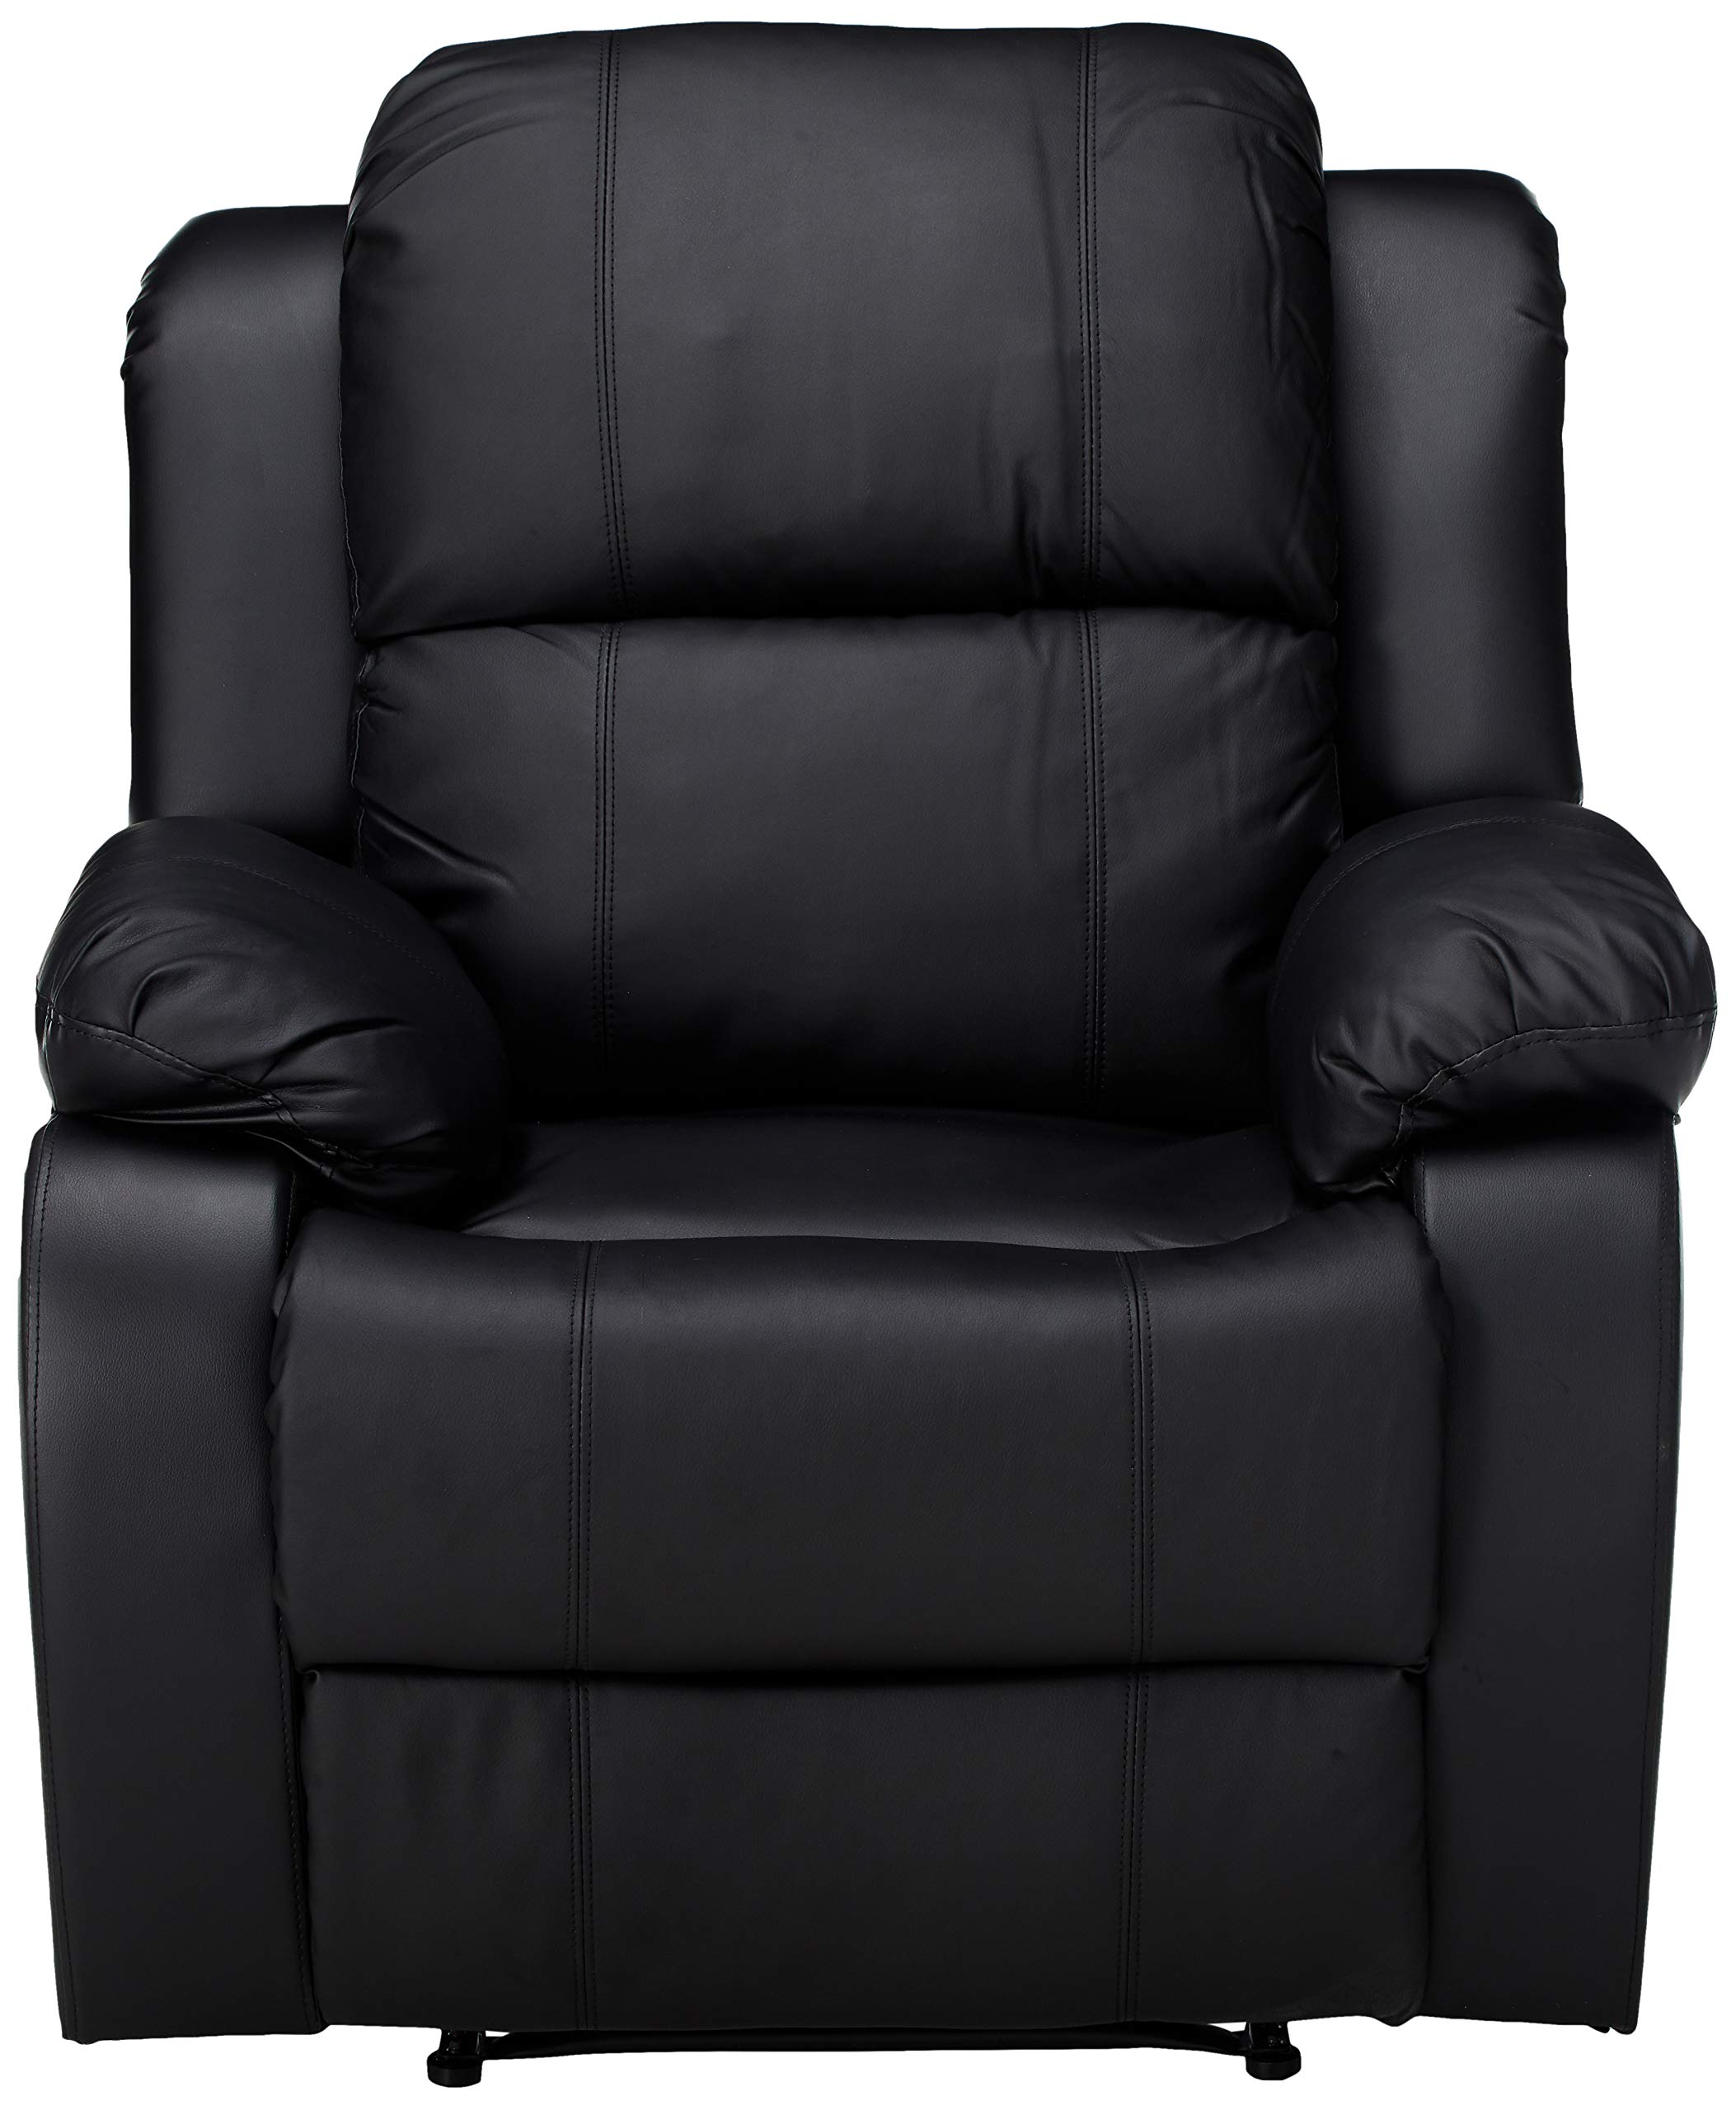 Merax Suede Heated Massage Recliner Sofa Chair Ergonomic Lounge With